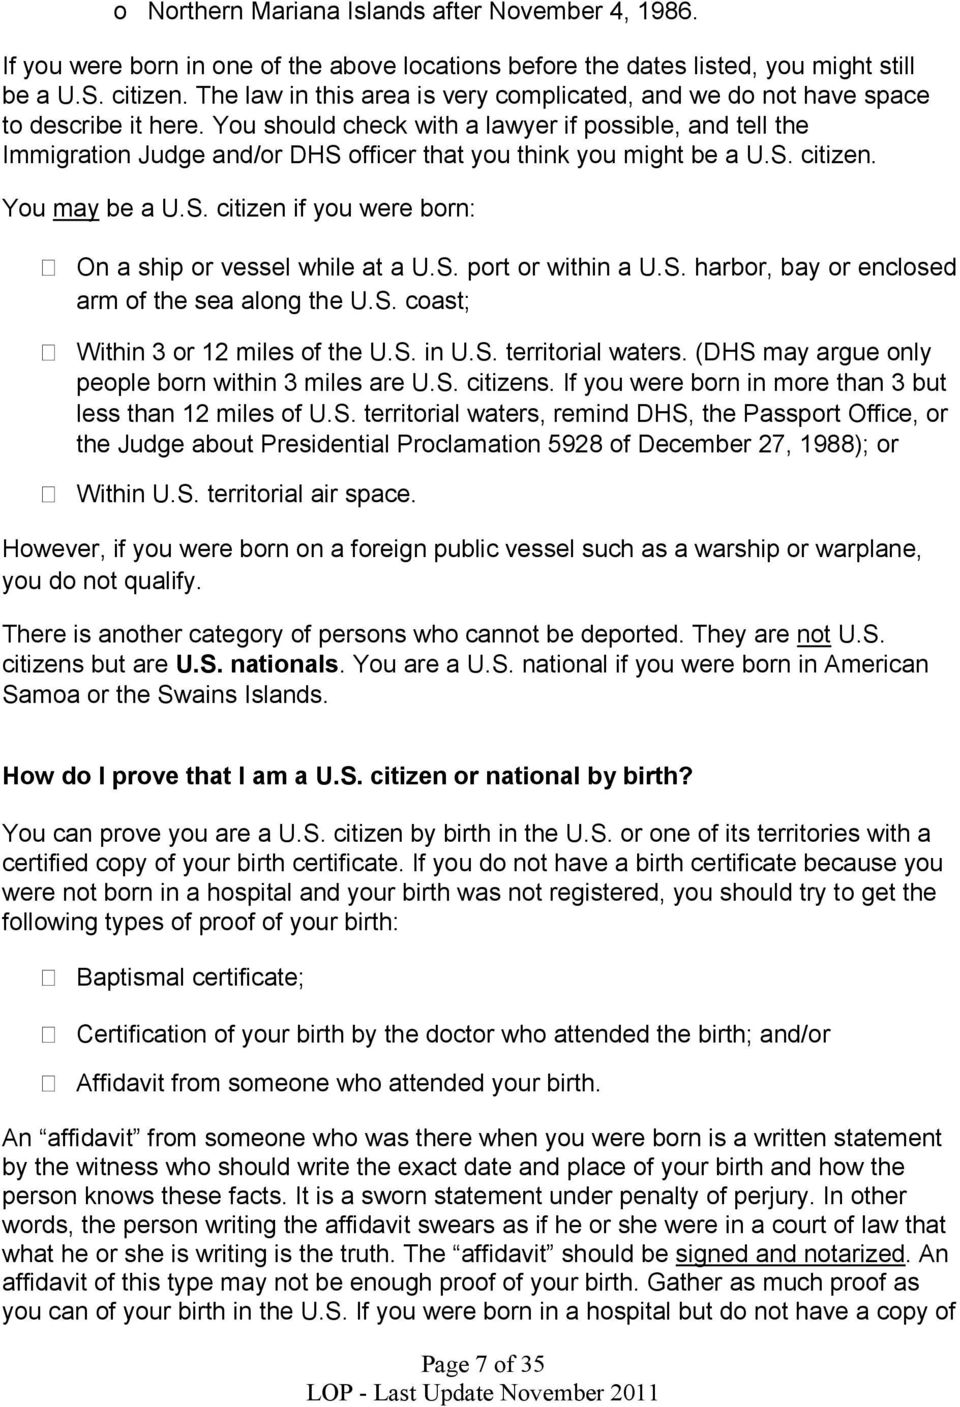 You should check with a lawyer if possible, and tell the Immigration Judge and/or DHS officer that you think you might be a U.S. citizen. You may be a U.S. citizen if you were born: On a ship or vessel while at a U.